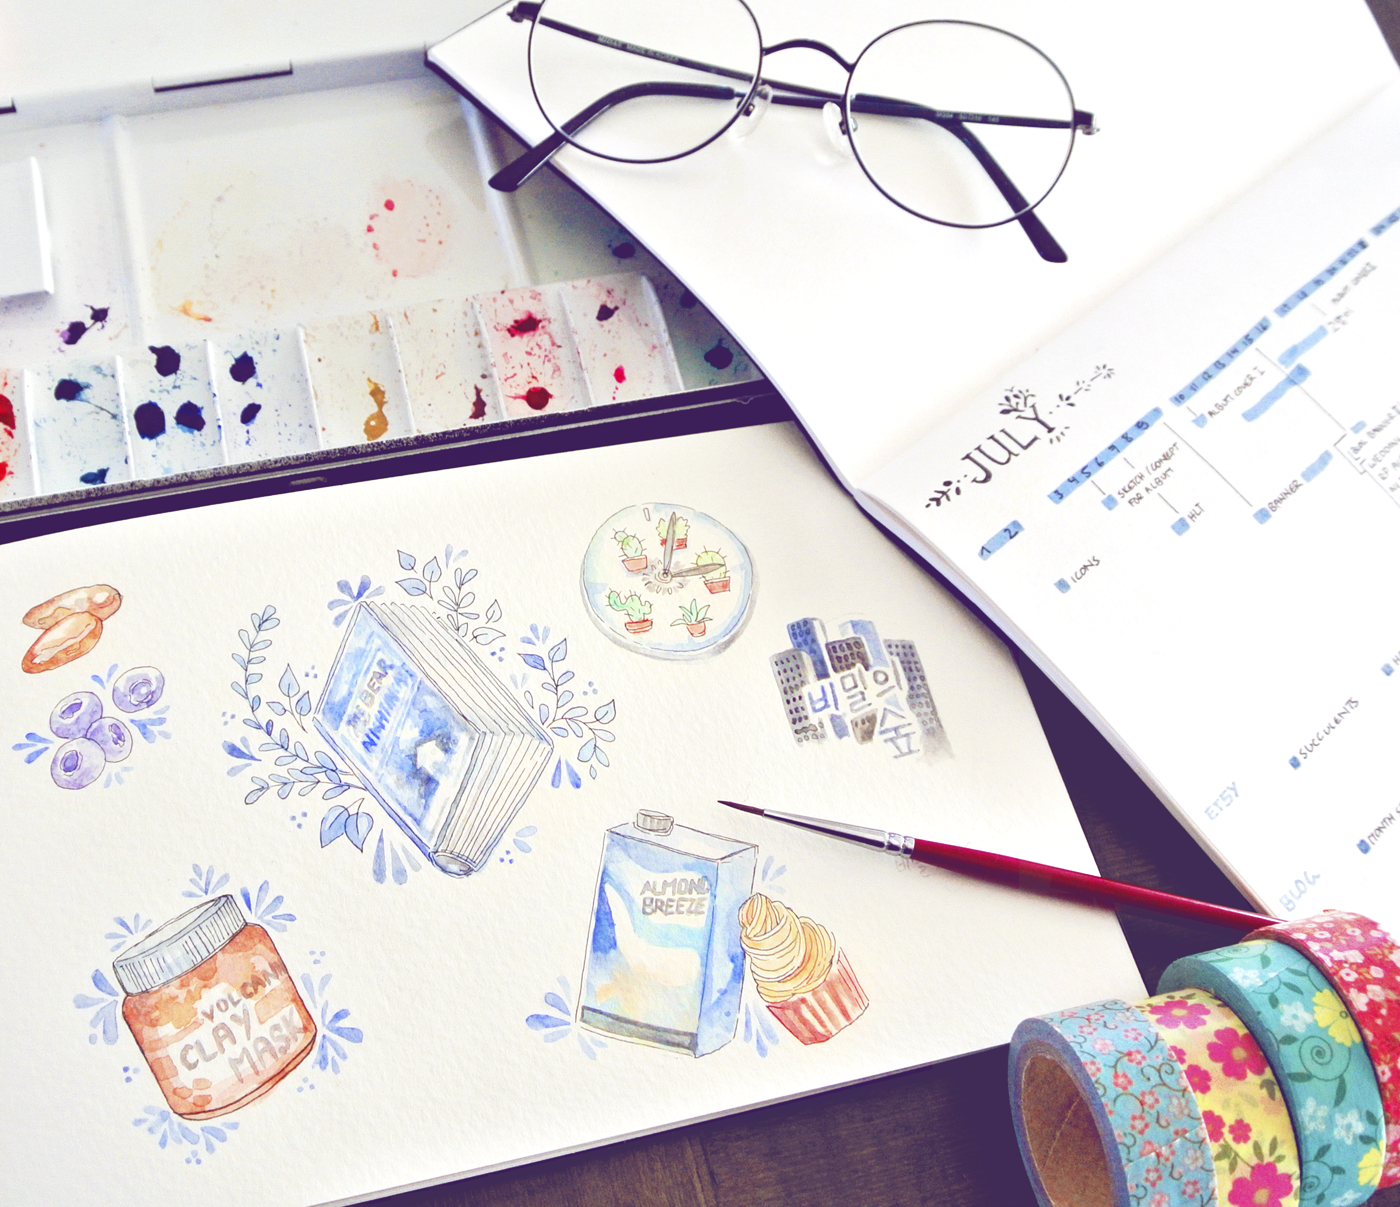 Drawing my favorites, watercolors in a Canson sketchbook. Love doing these blog illustrations!